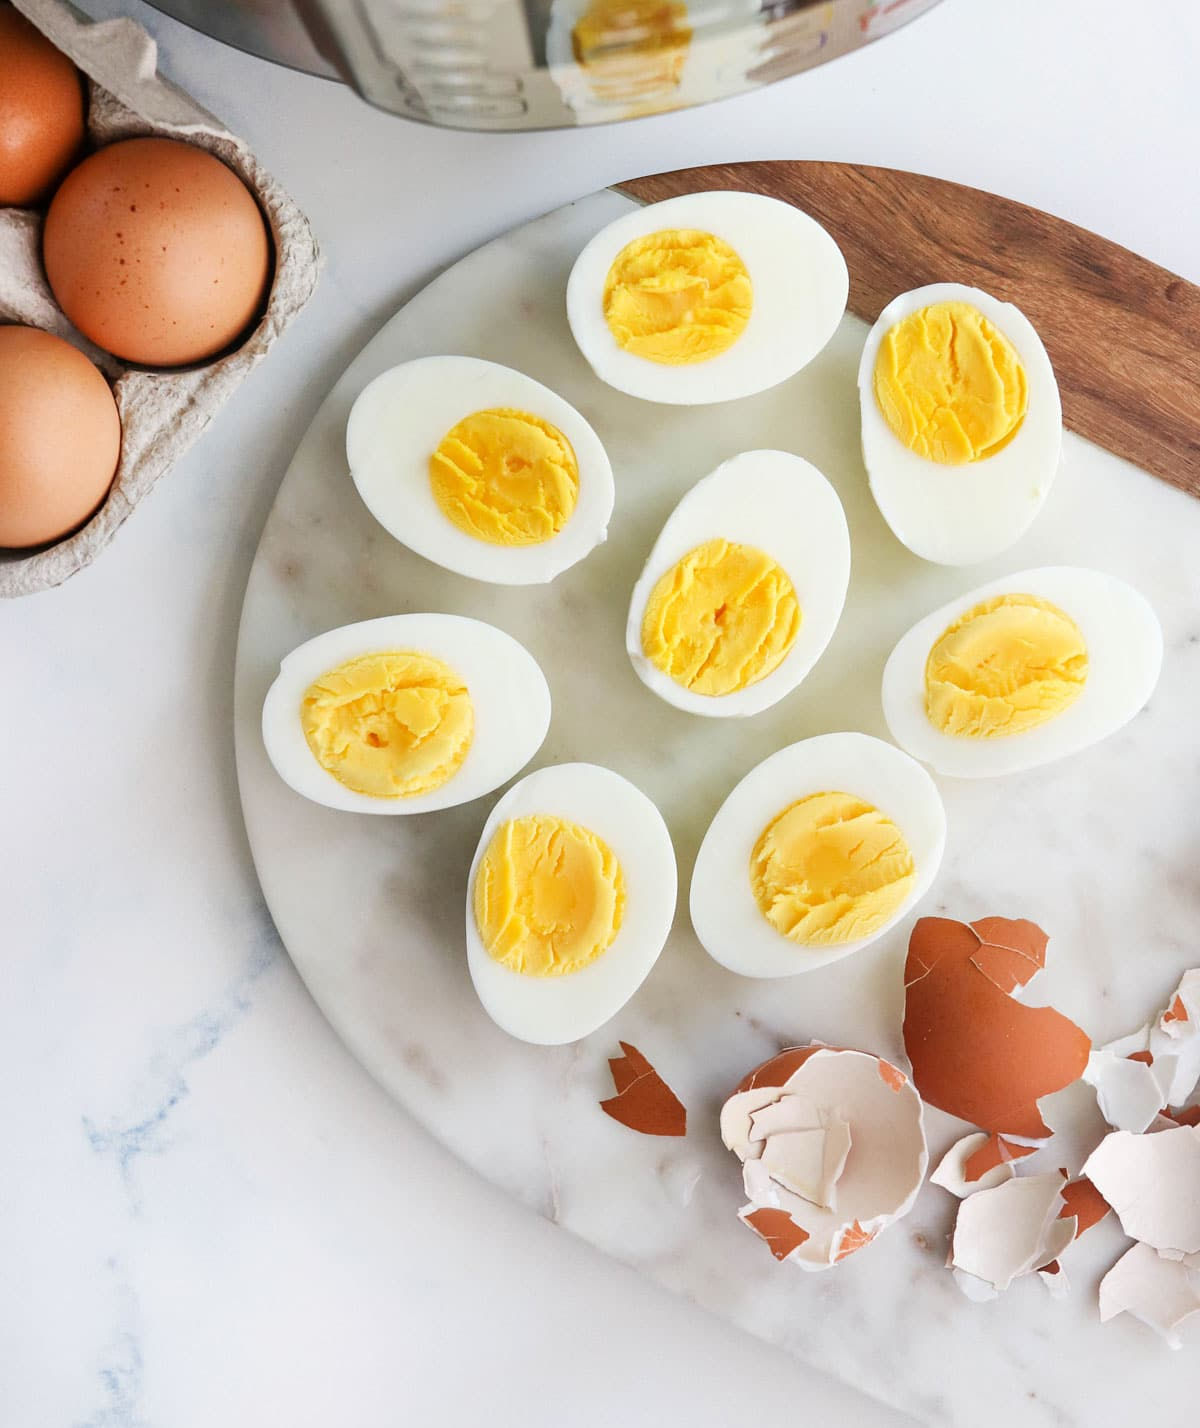 Instant Pot hard boiled eggs cut in half on a marble board